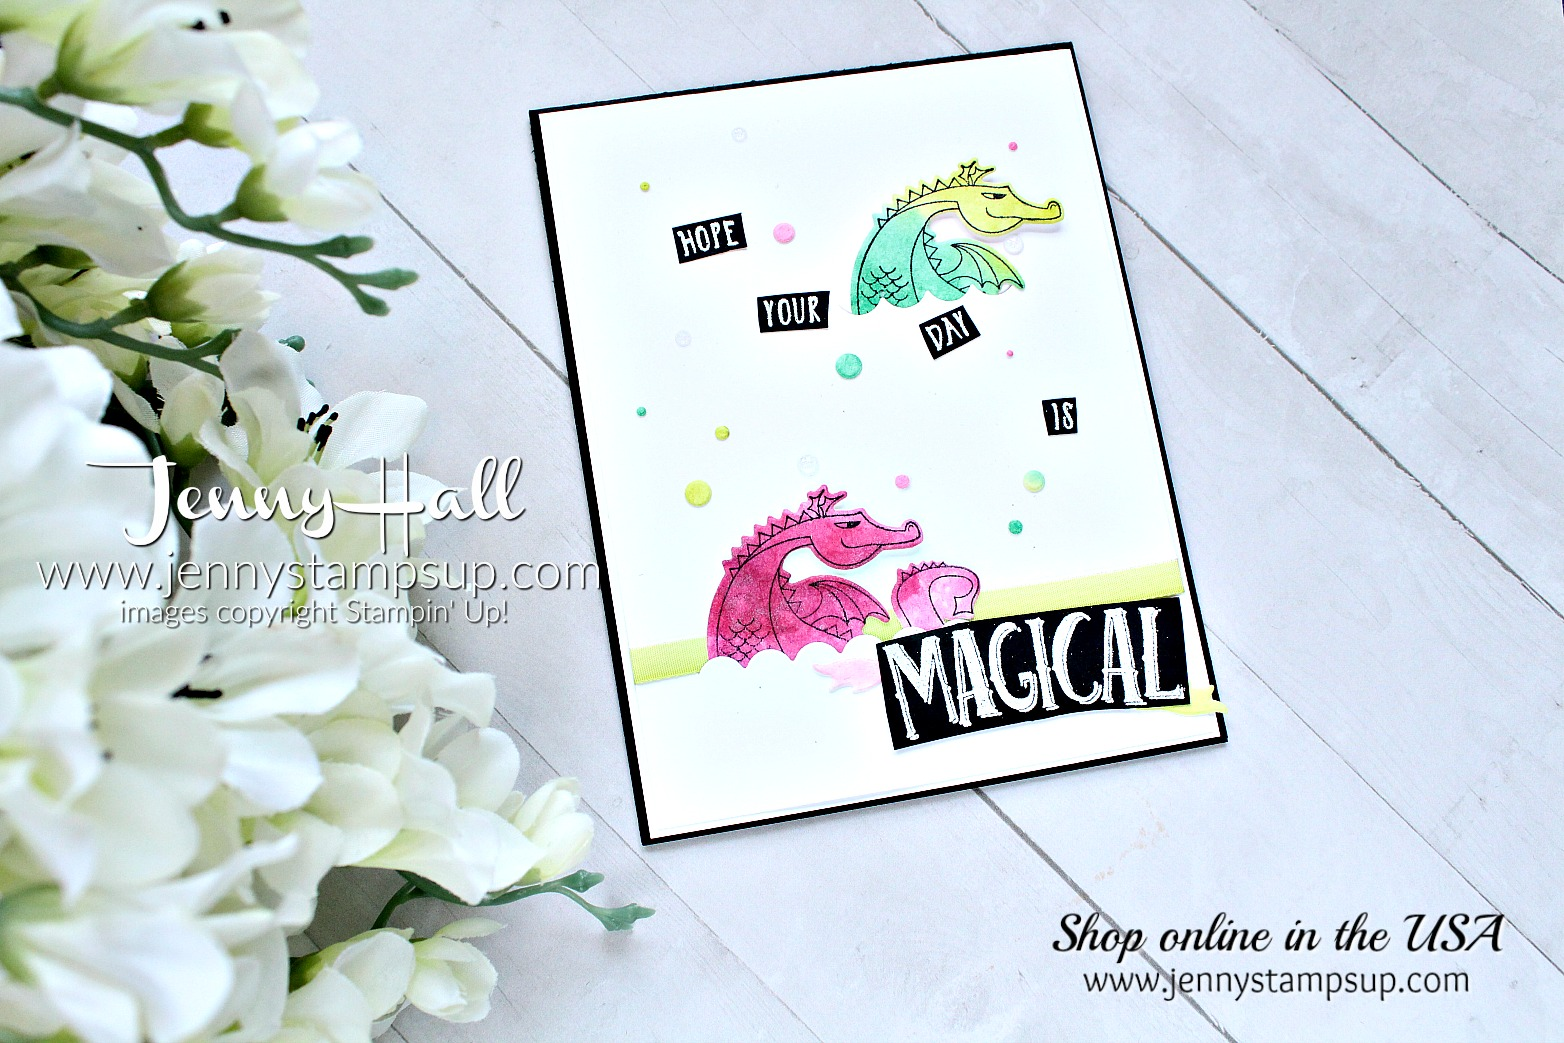 Salted Watercolor dragons card by Jenny Hall at www.jennystampsup.com for #cardmaking #stampinup #magicalday #dragon #dragonstamp #cardmakingtechniques #stampinup #jennystampsup #jennyhalldesign #jennyhallstampinup #cascards #cleanandsimplecards #stamping #cardmakingvideo #processvideo